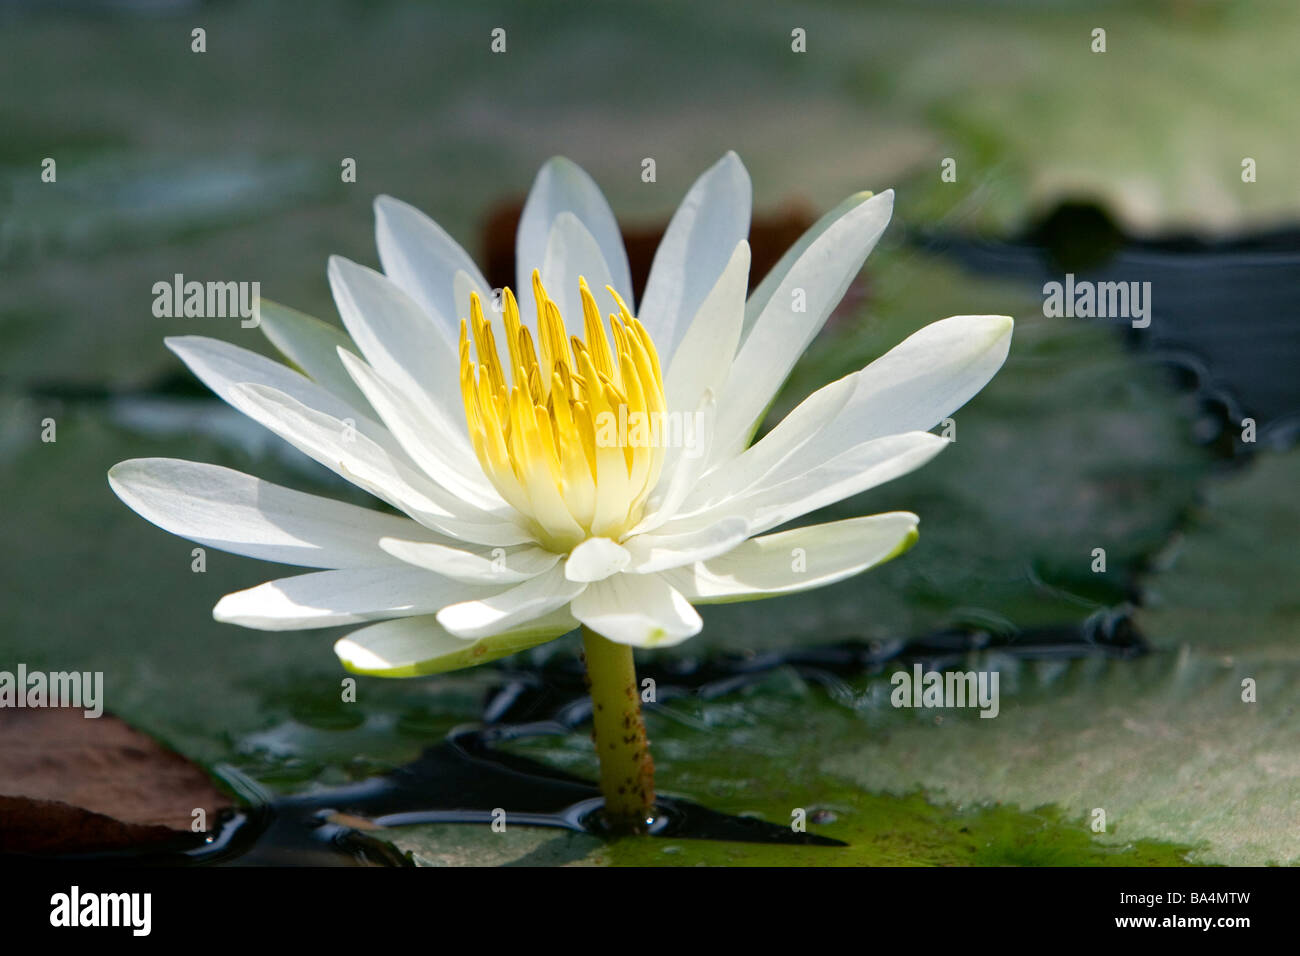 Water Lily Flowers Stock Photos Water Lily Flowers Stock Images